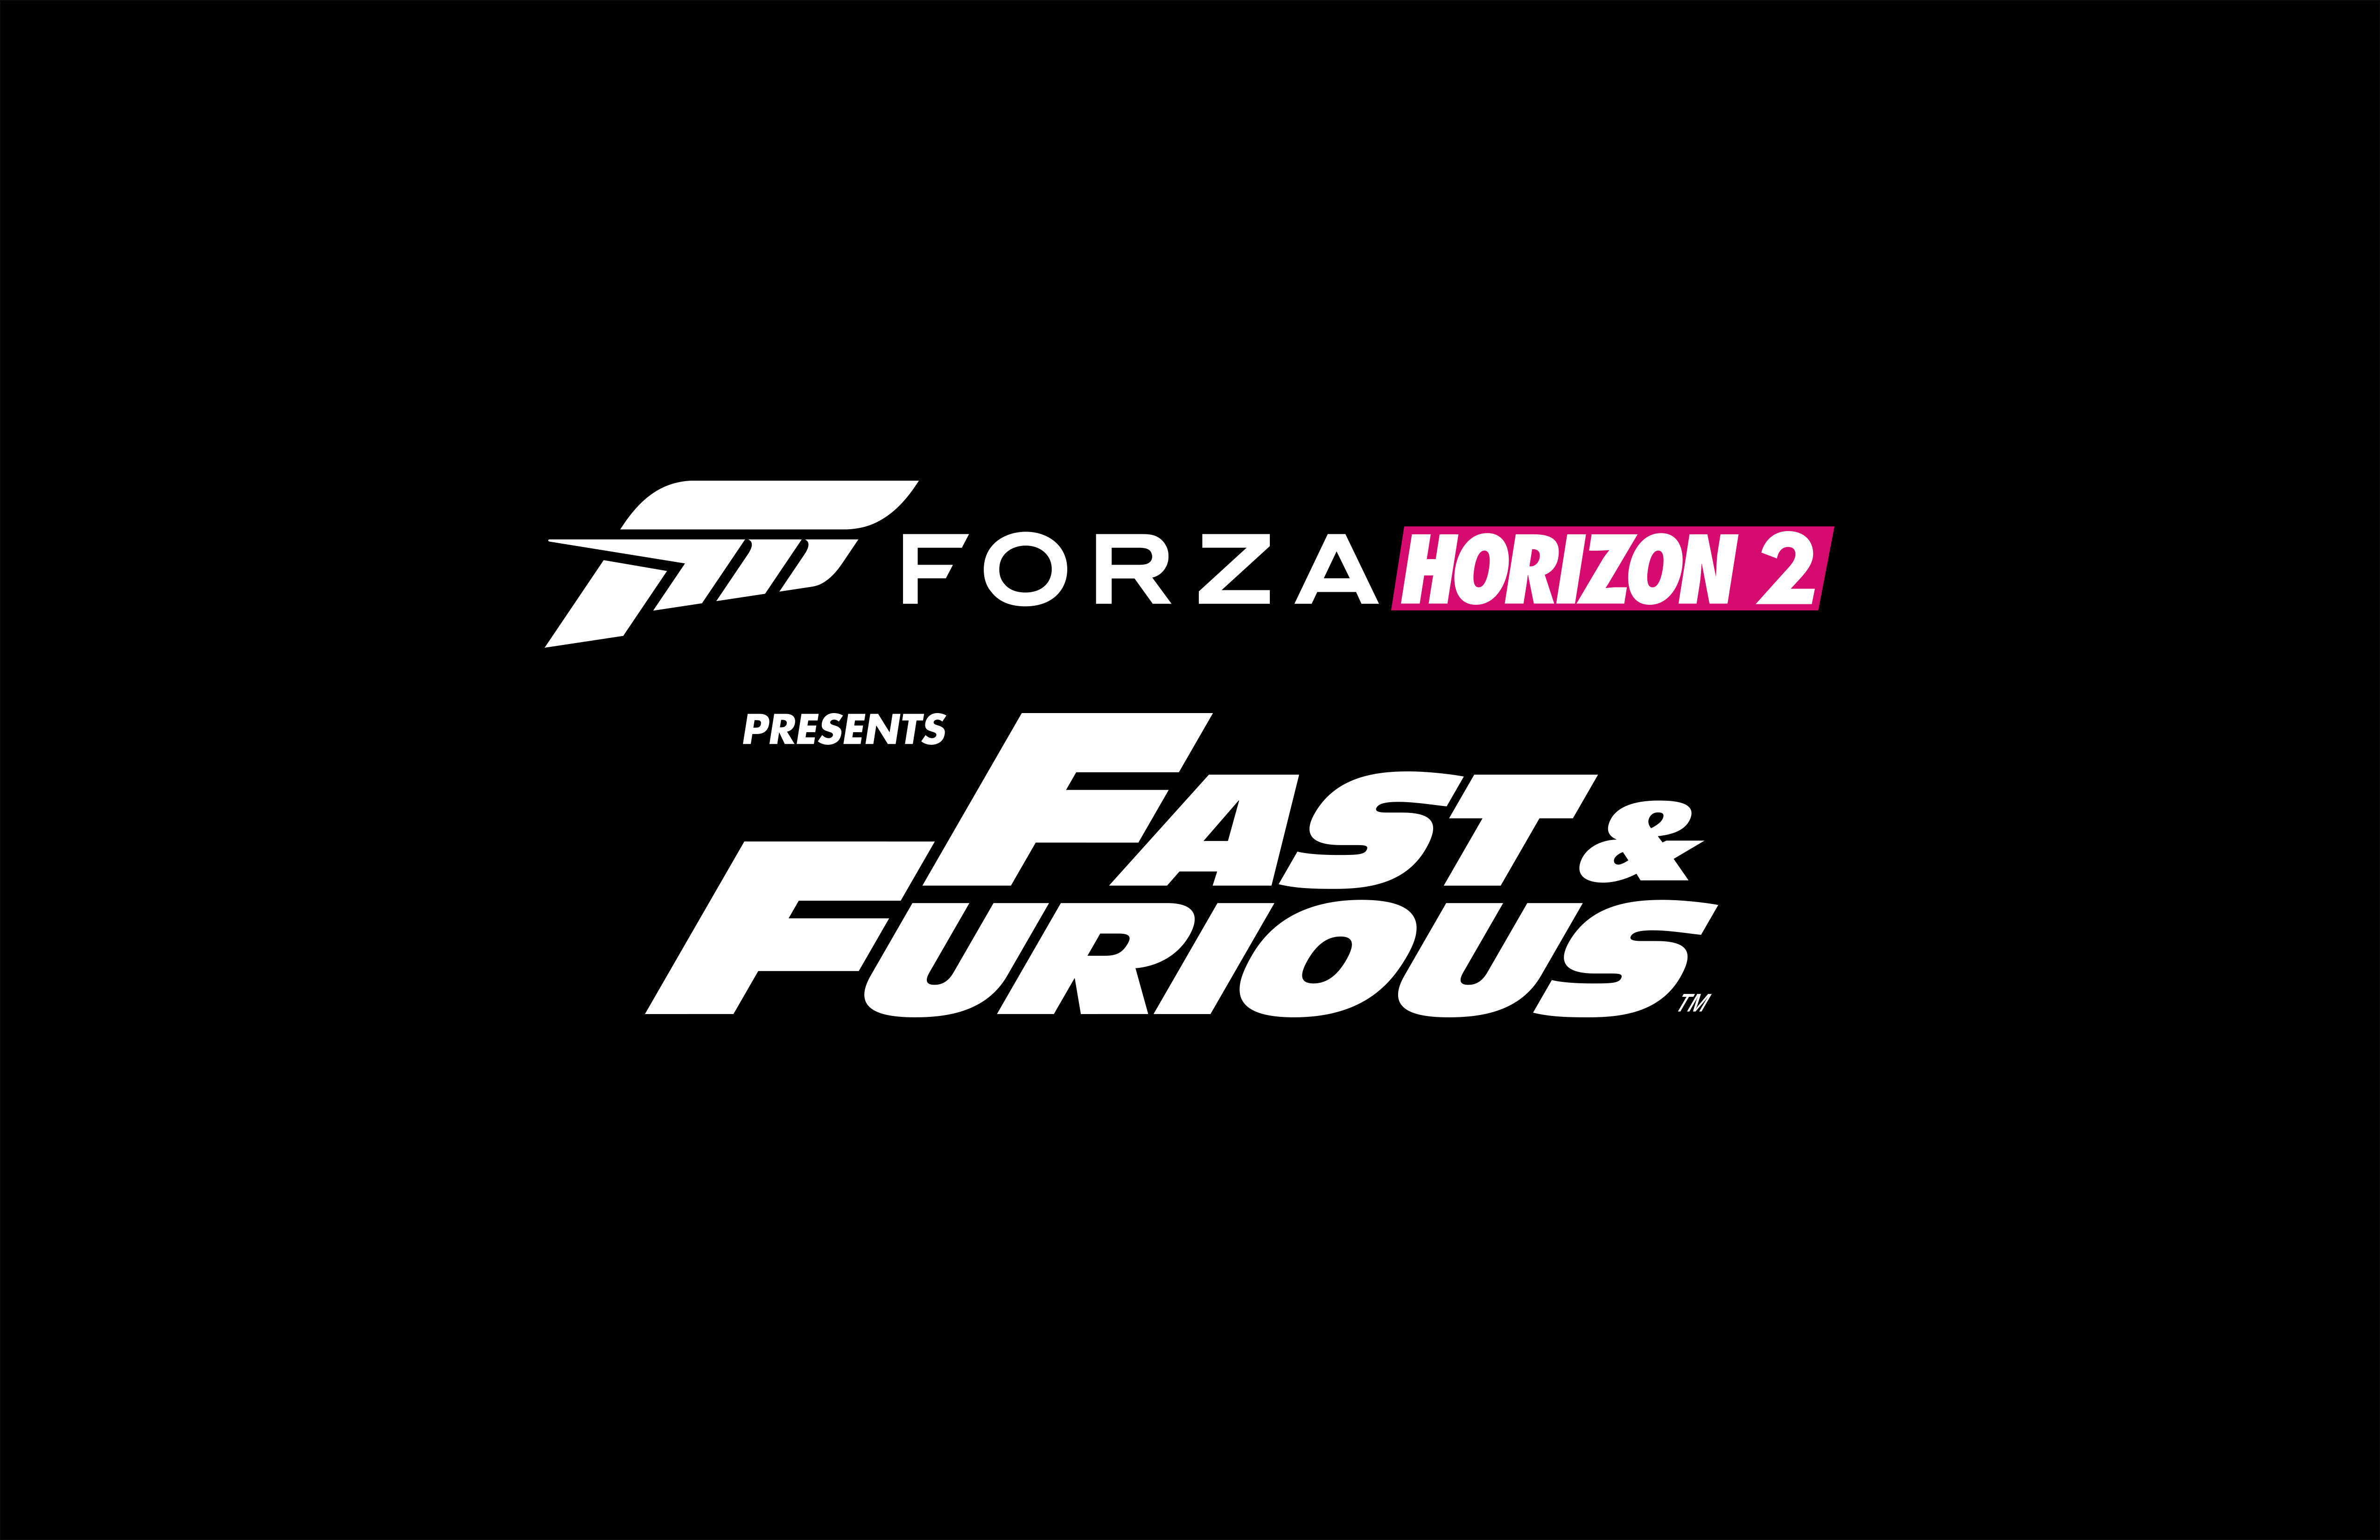 Forza Horizon 2 Presents Fast & Furious – At No Charge for a